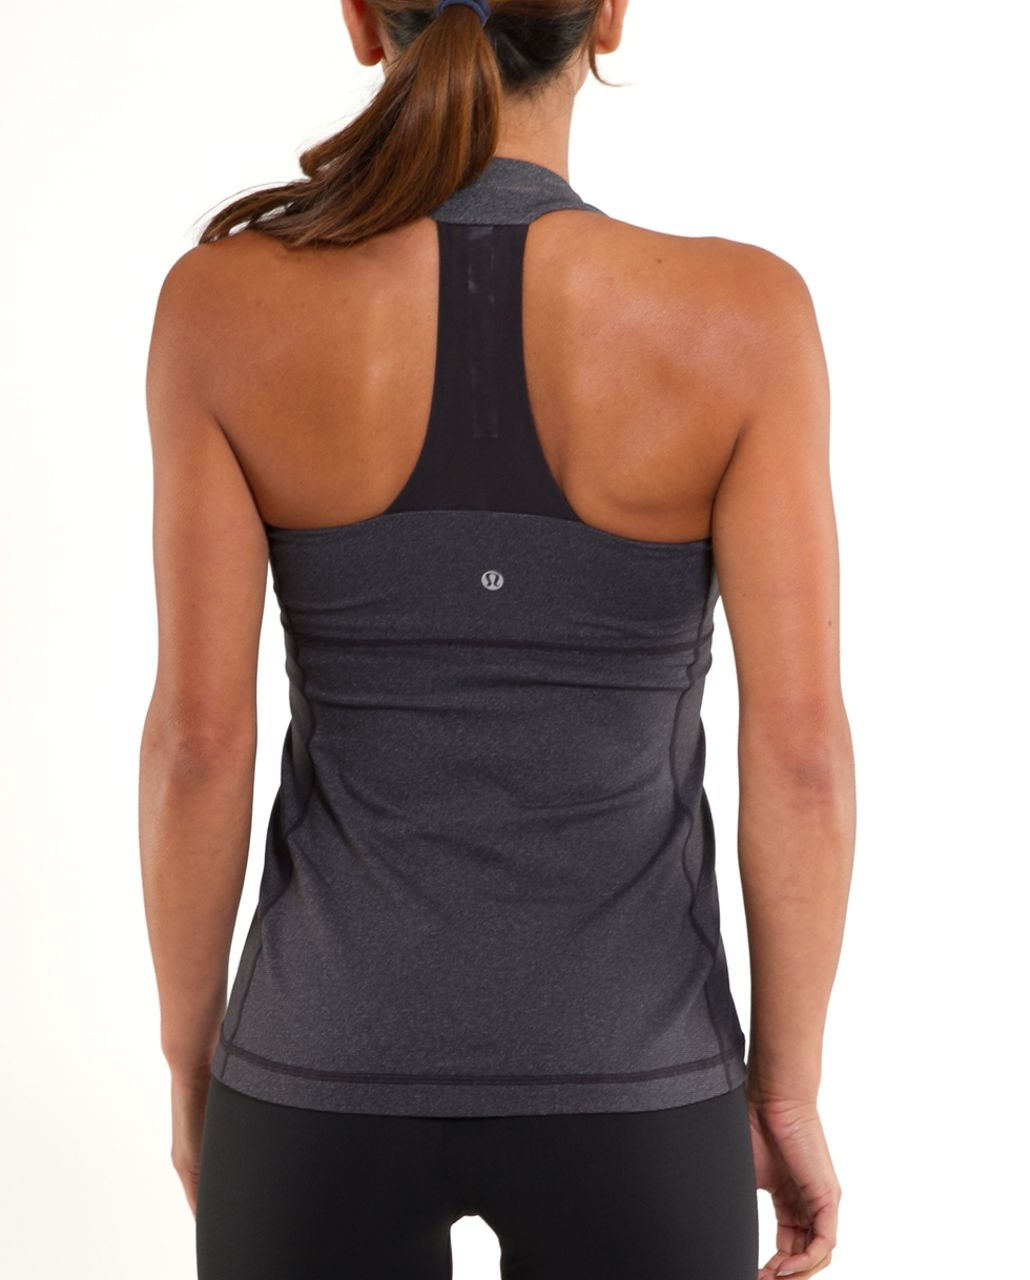 Lululemon Scoop Neck Tank - Deep Coal Heathered Coal Wee Stripe /  Deep Coal